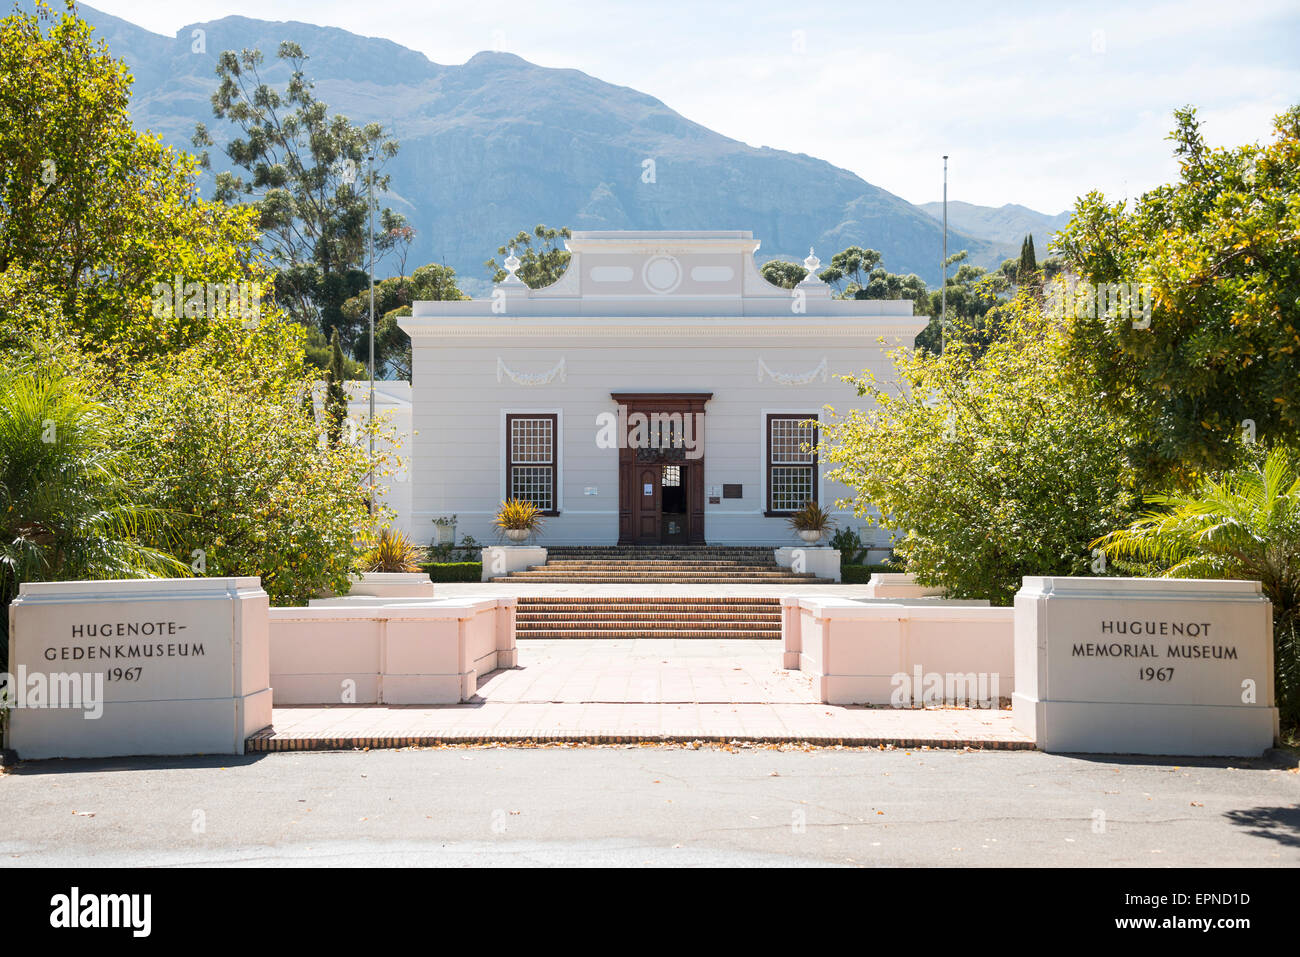 The Huguenot Memorial Musem, Franschhoek, Cape Winelands District, Western Cape Province, Republic of South Africa - Stock Image